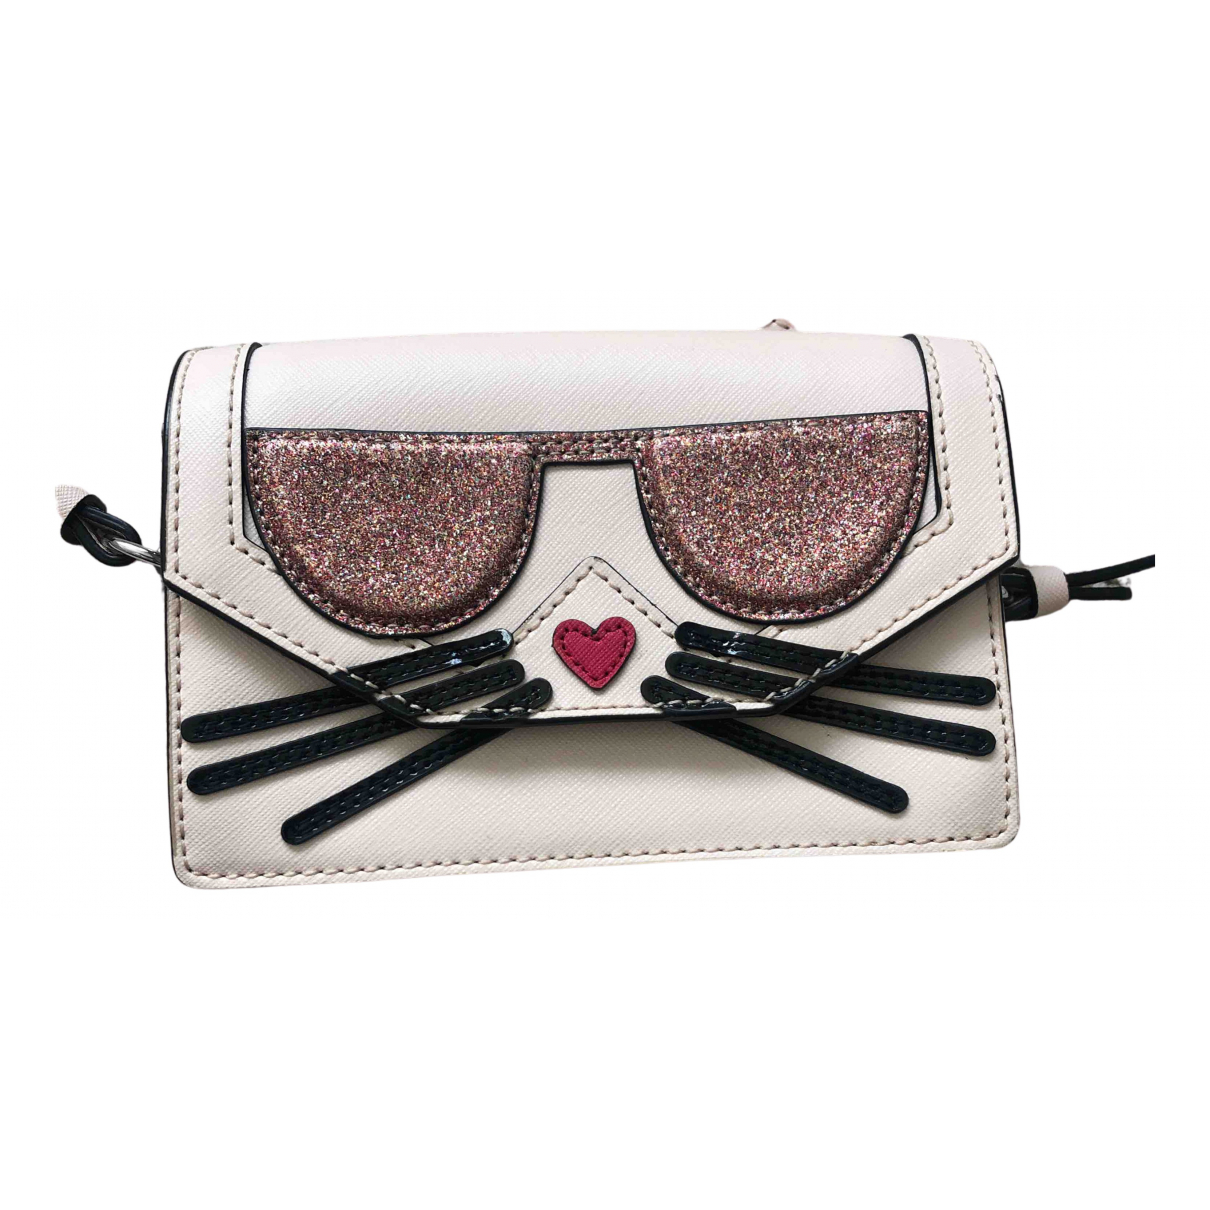 Karl Lagerfeld N Beige Leather Clutch bag for Women N